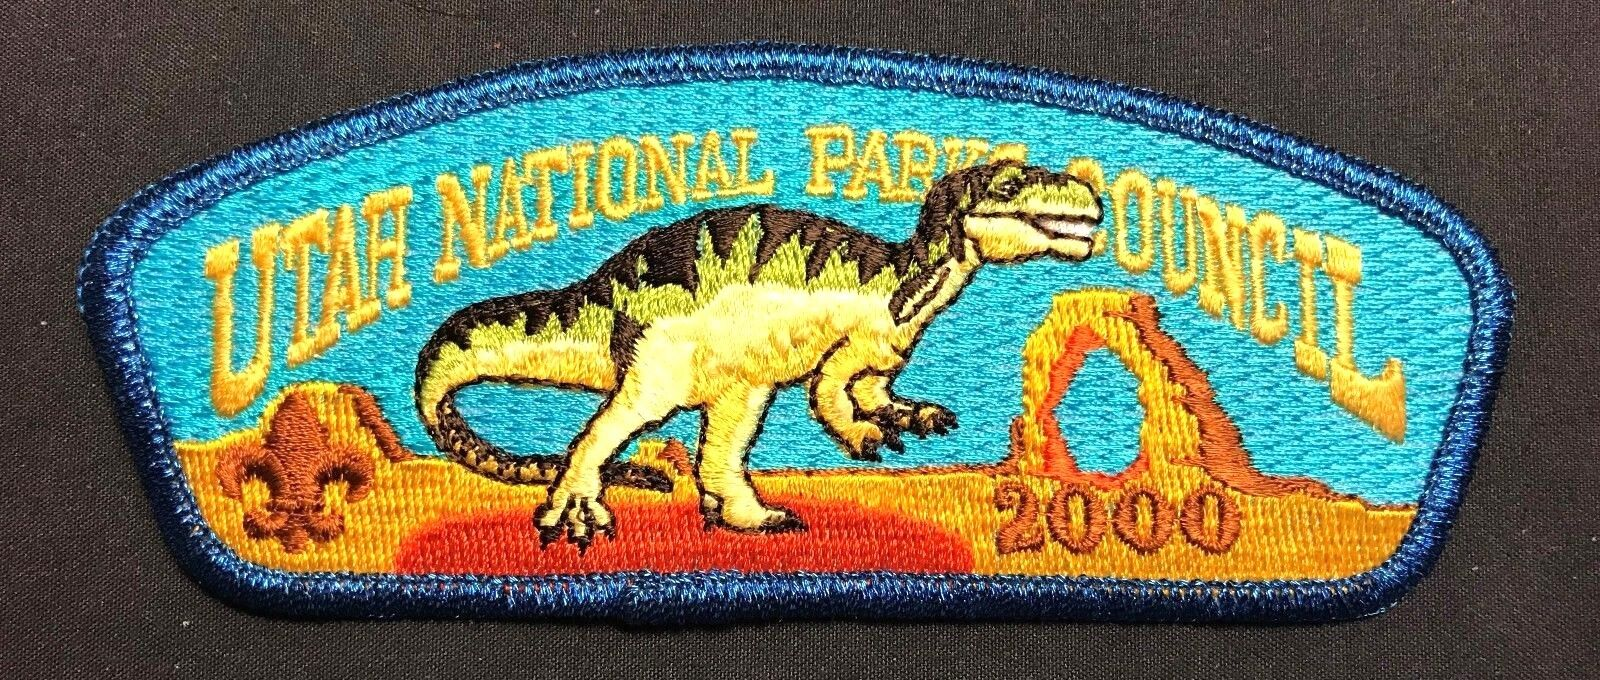 UTAH NATIONAL PARKS  COUNCIL OA TU-CUBIN-NOONIE LODGE 508 DINOSAUR ARCH 2000 CSP